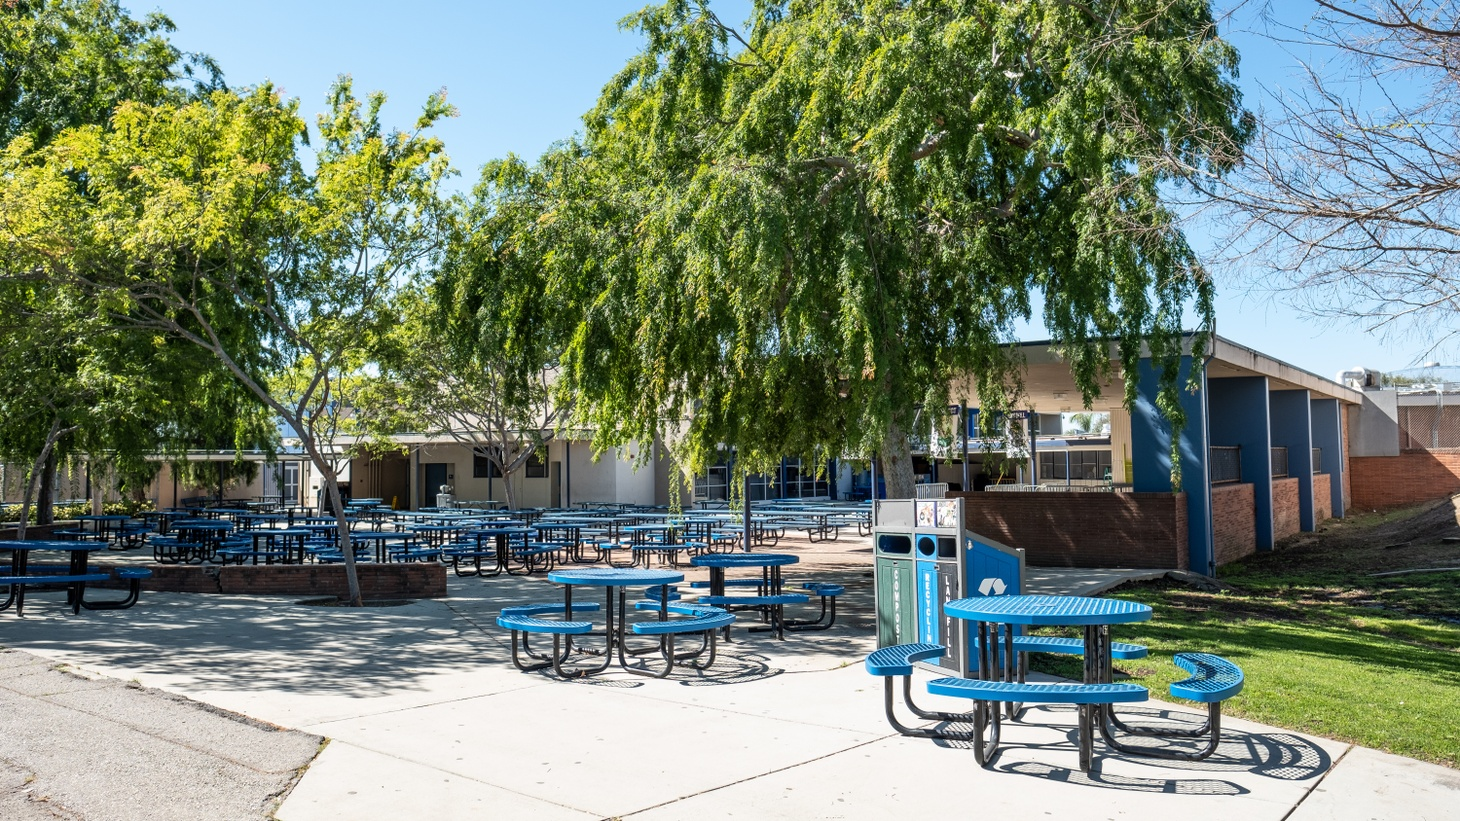 Courtyard tables sit empty at Culver City Middle School, March 1, 2021.